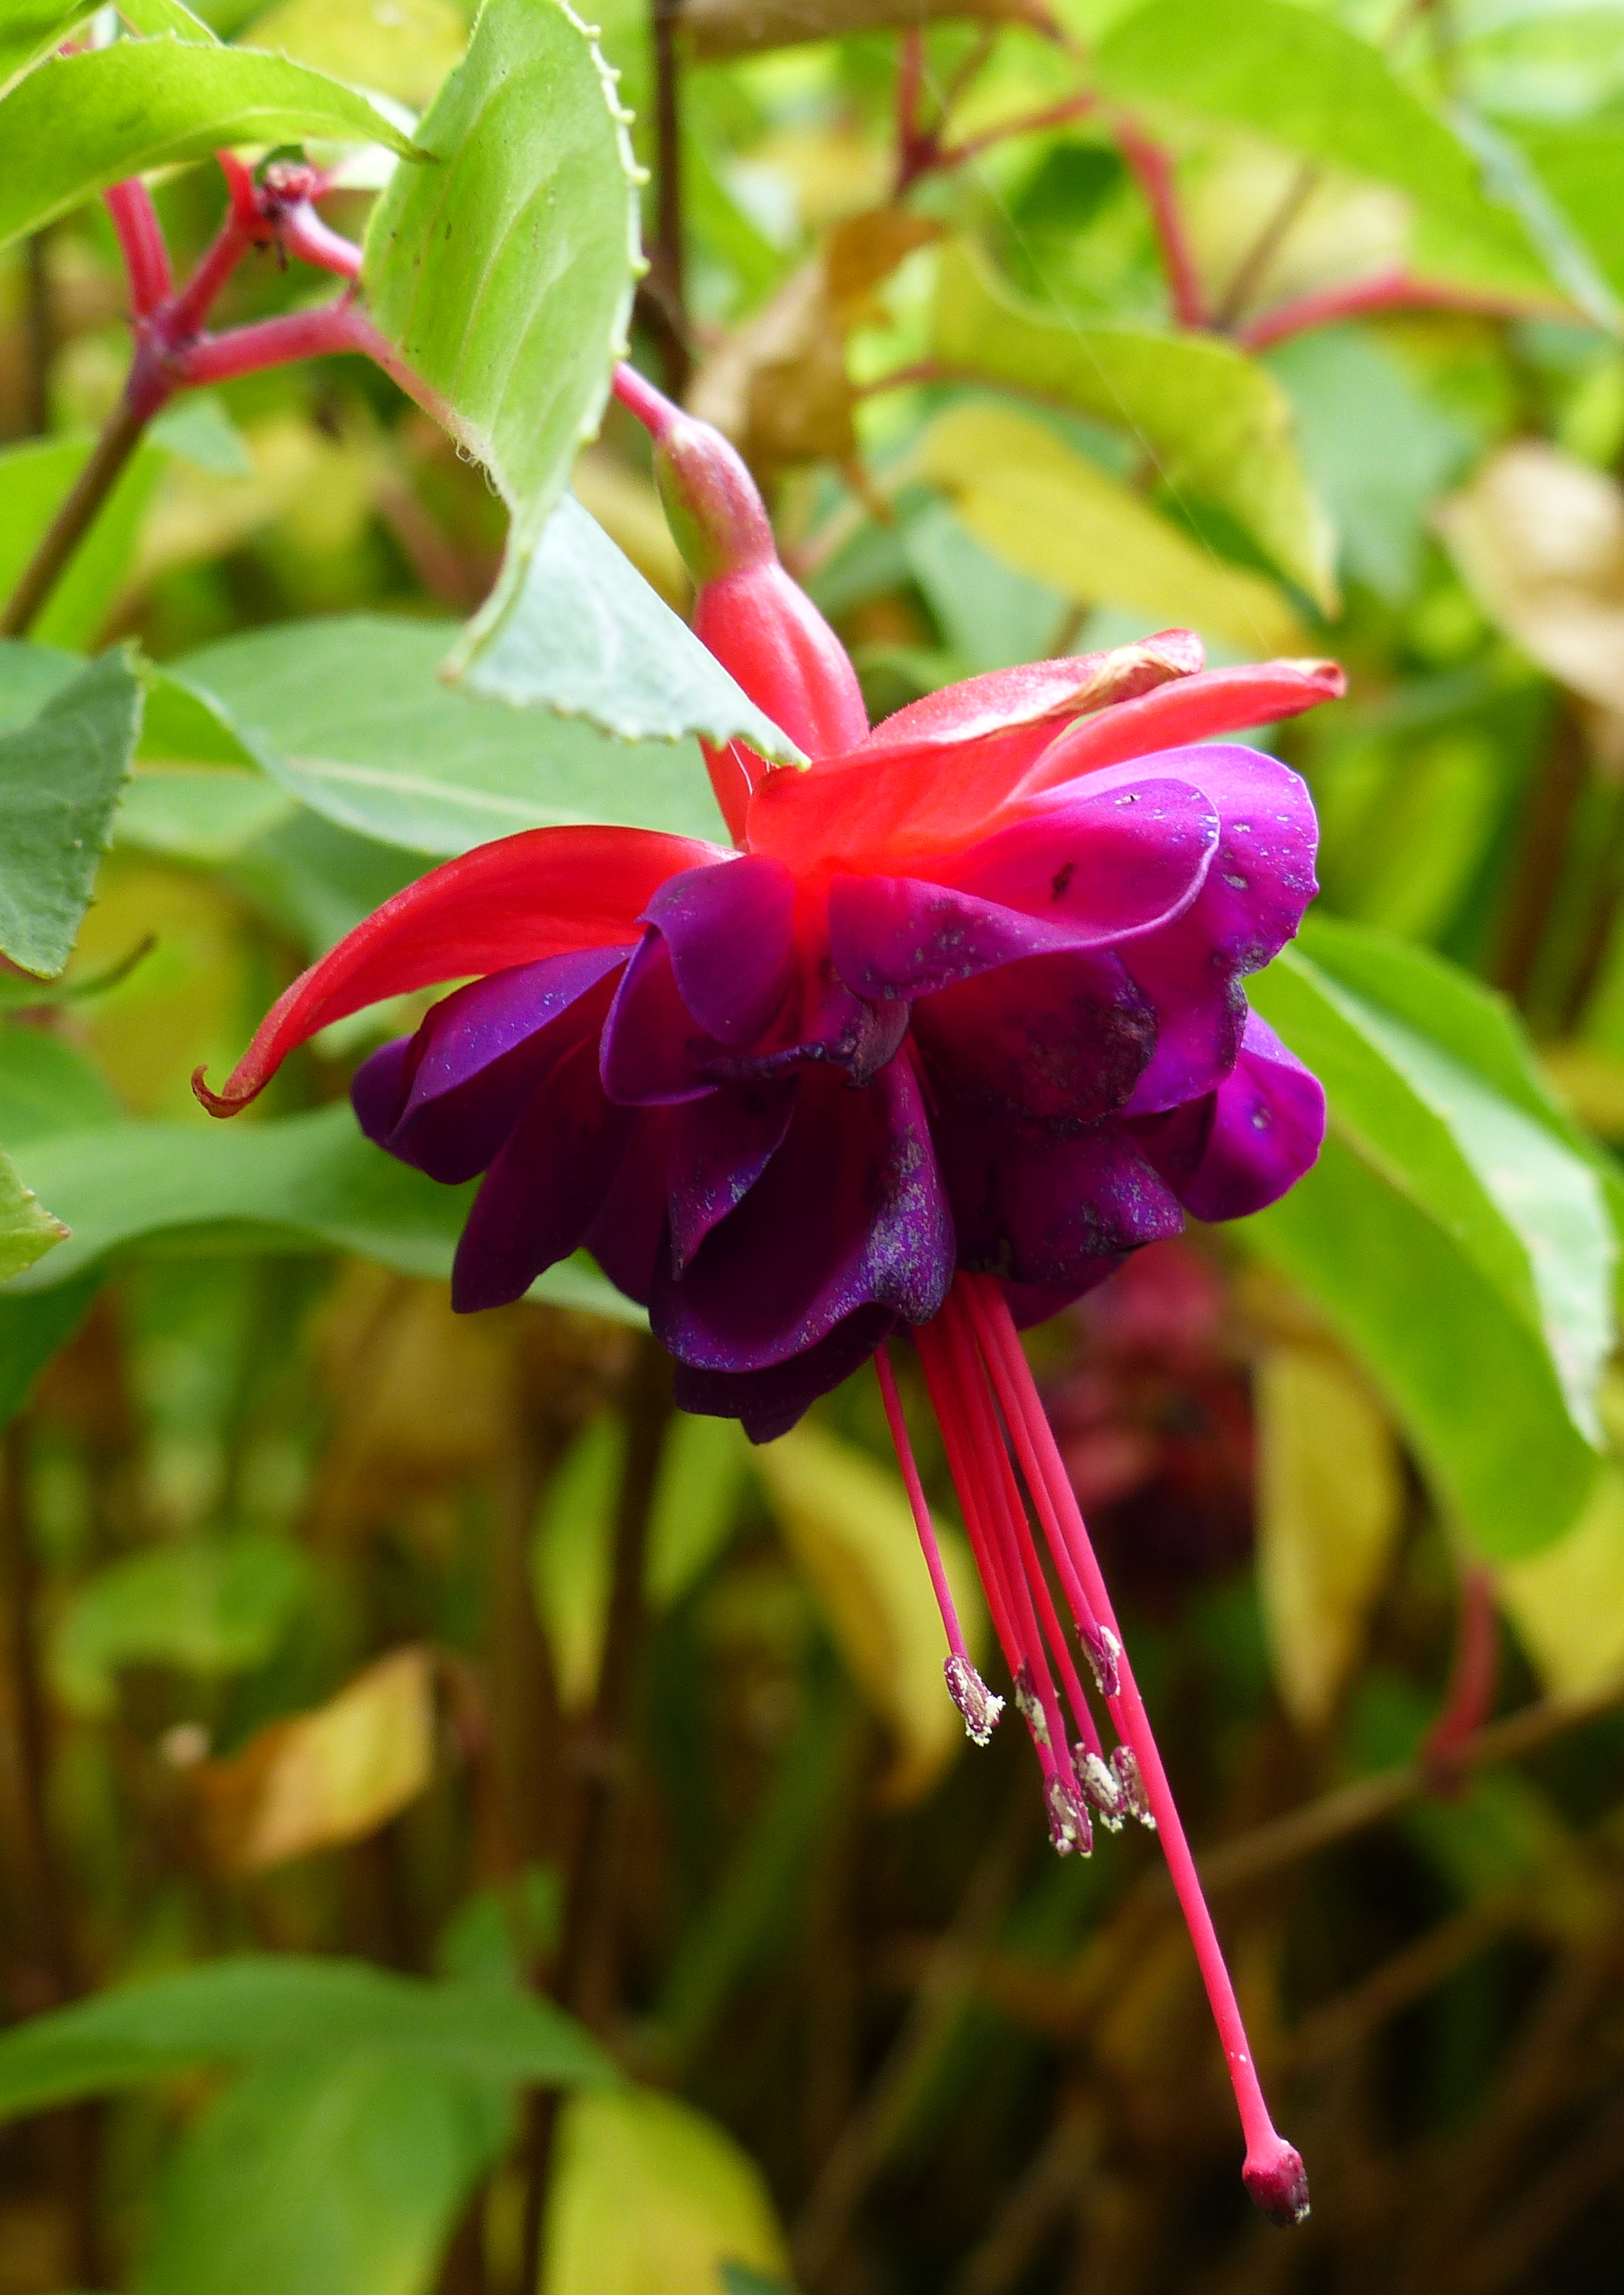 Fushia 'Royal velvet'